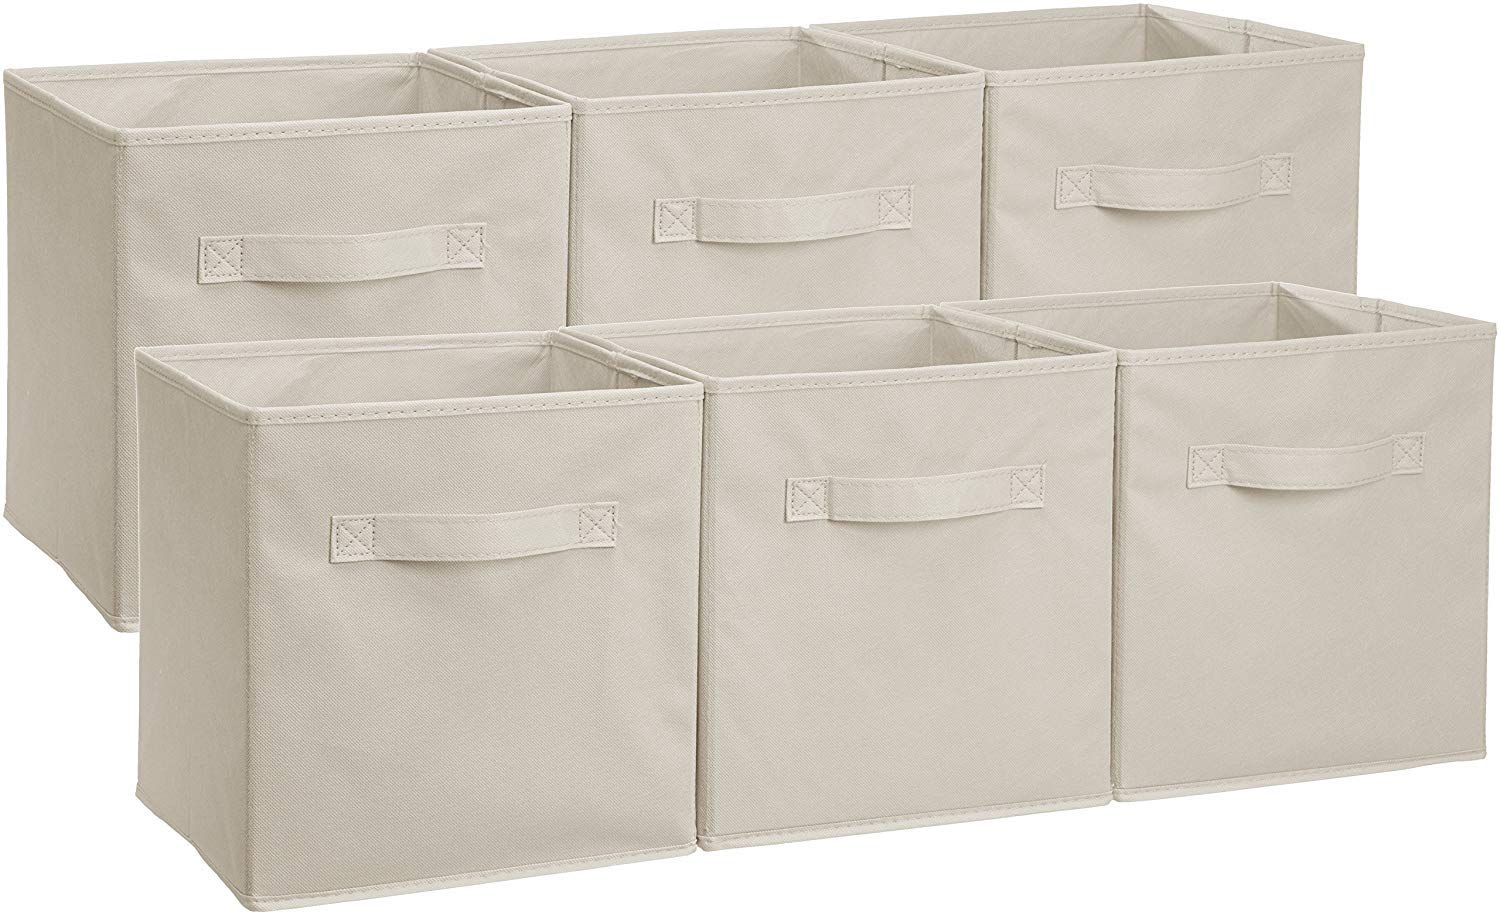 Amazon Basics Collapsible Fabric Storage Cubes Organizer with Handles, Beige - Pack of 6